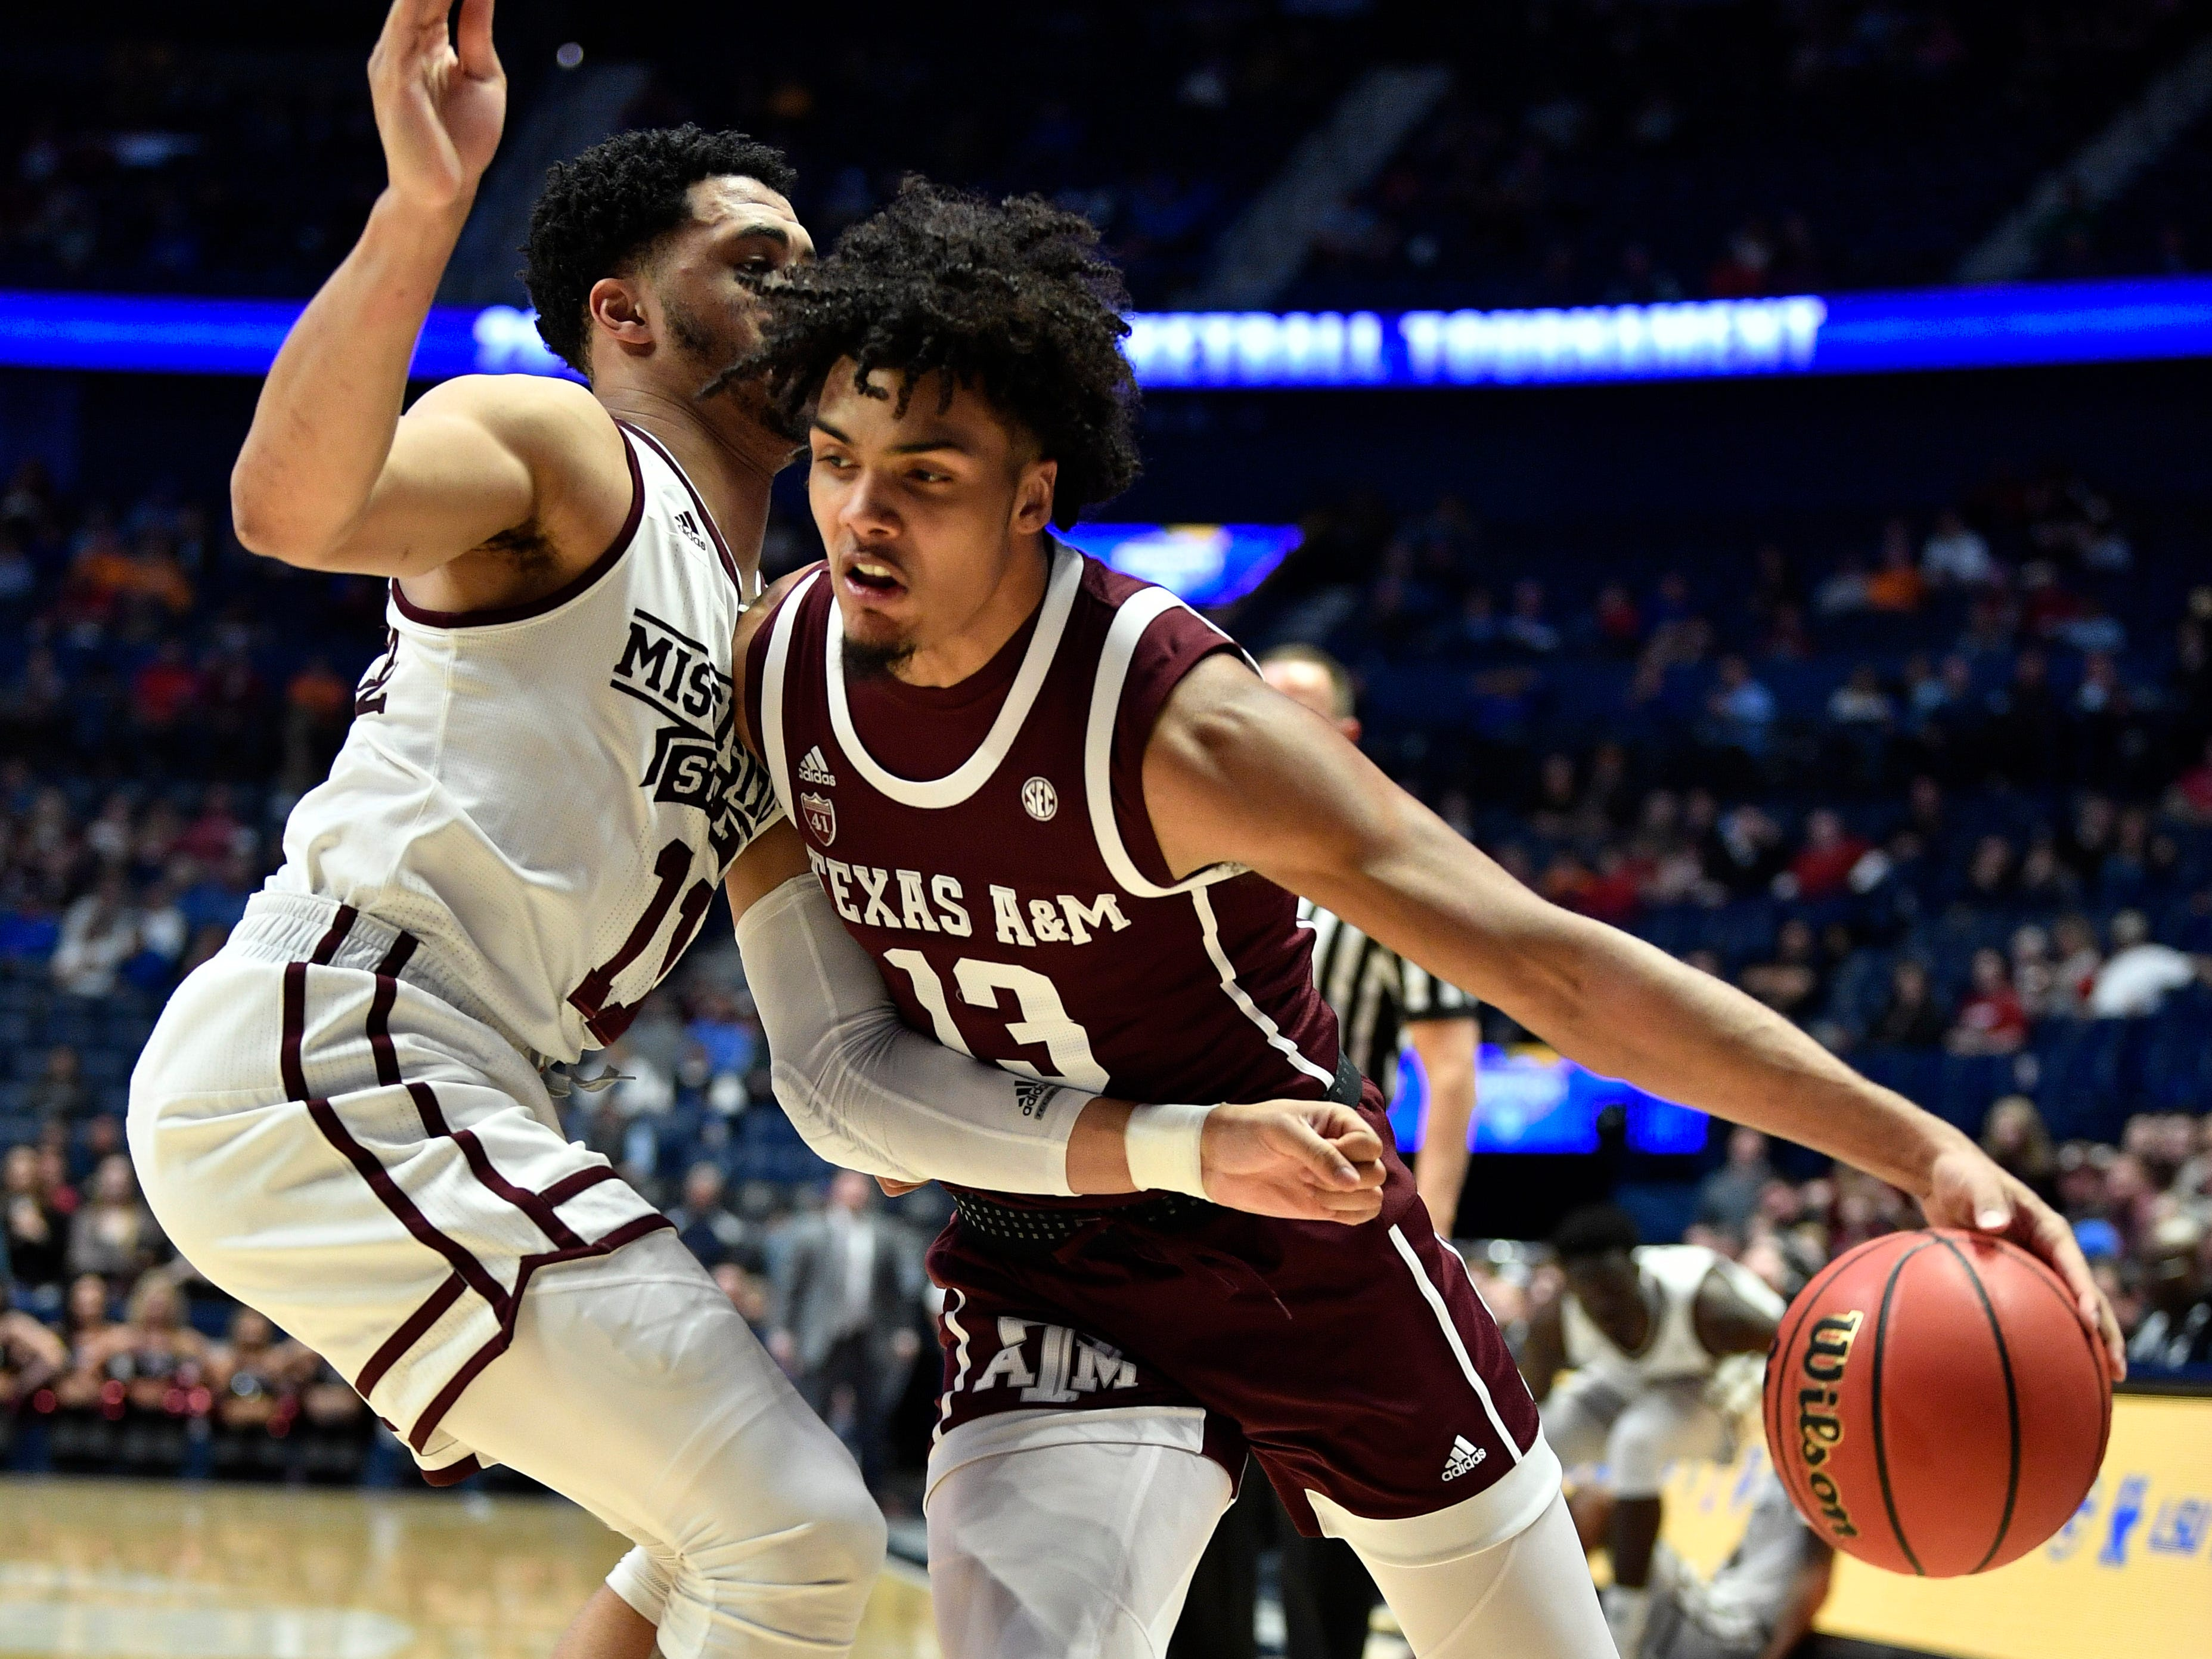 Texas A&M guard Brandon Mahan (13) moves the ball defended by Mississippi State guard Quinndary Weatherspoon (11) during the first half of the SEC Men's Basketball Tournament game at Bridgestone Arena in Nashville, Tenn., Thursday, March 14, 2019.